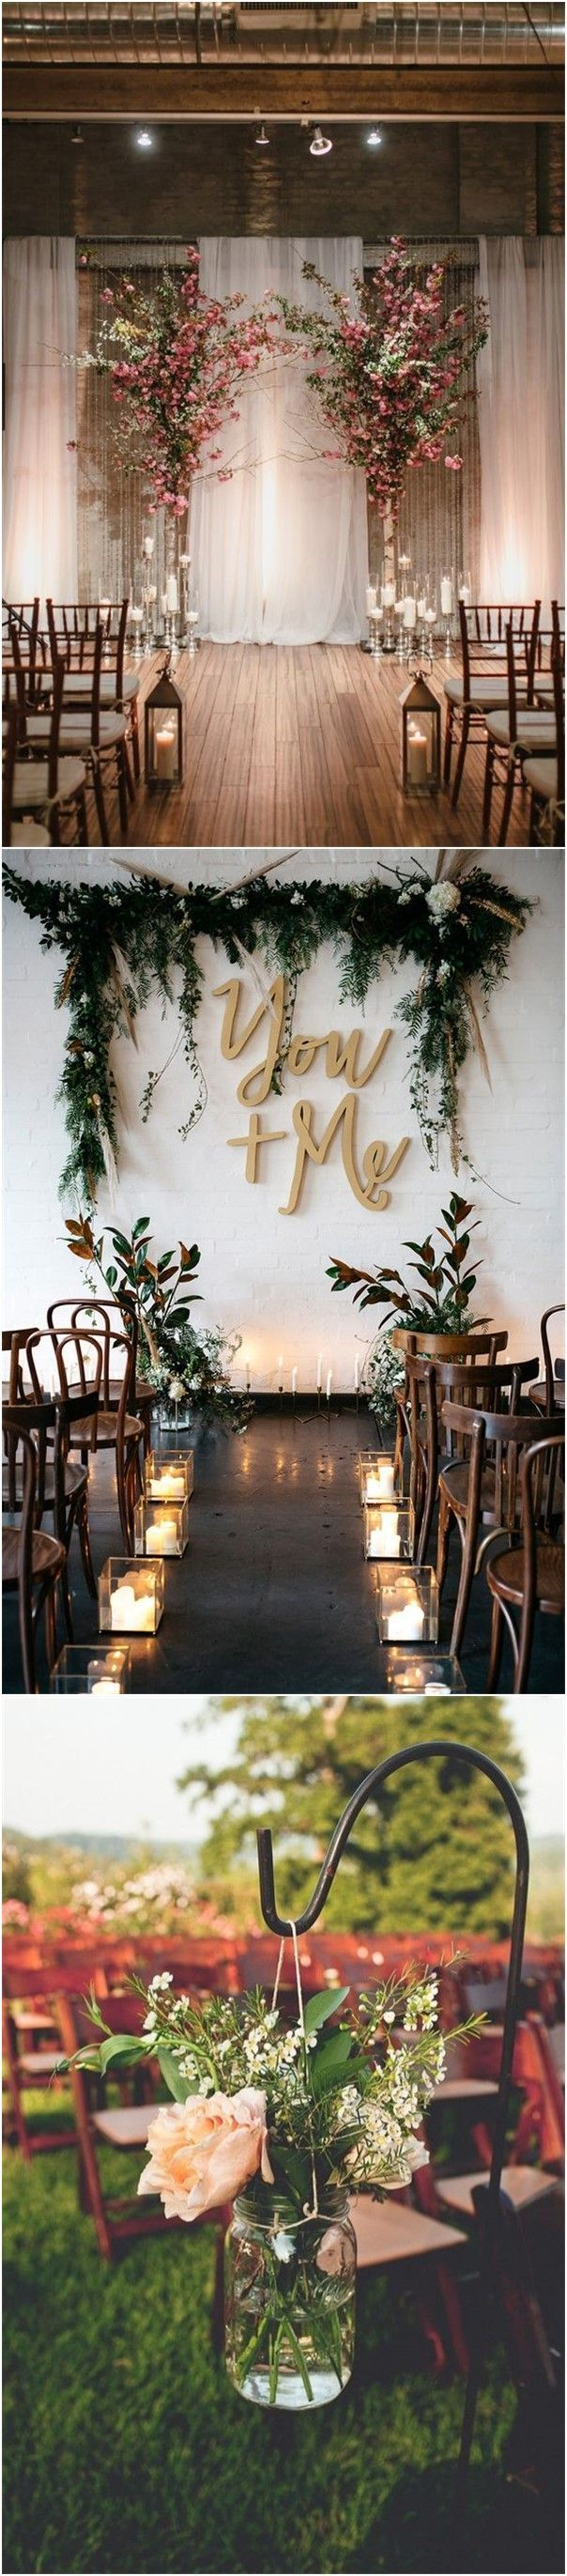 Wedding room decoration ideas 2018   Rustic Outdoor Wedding Ceremony Decorations Ideas in